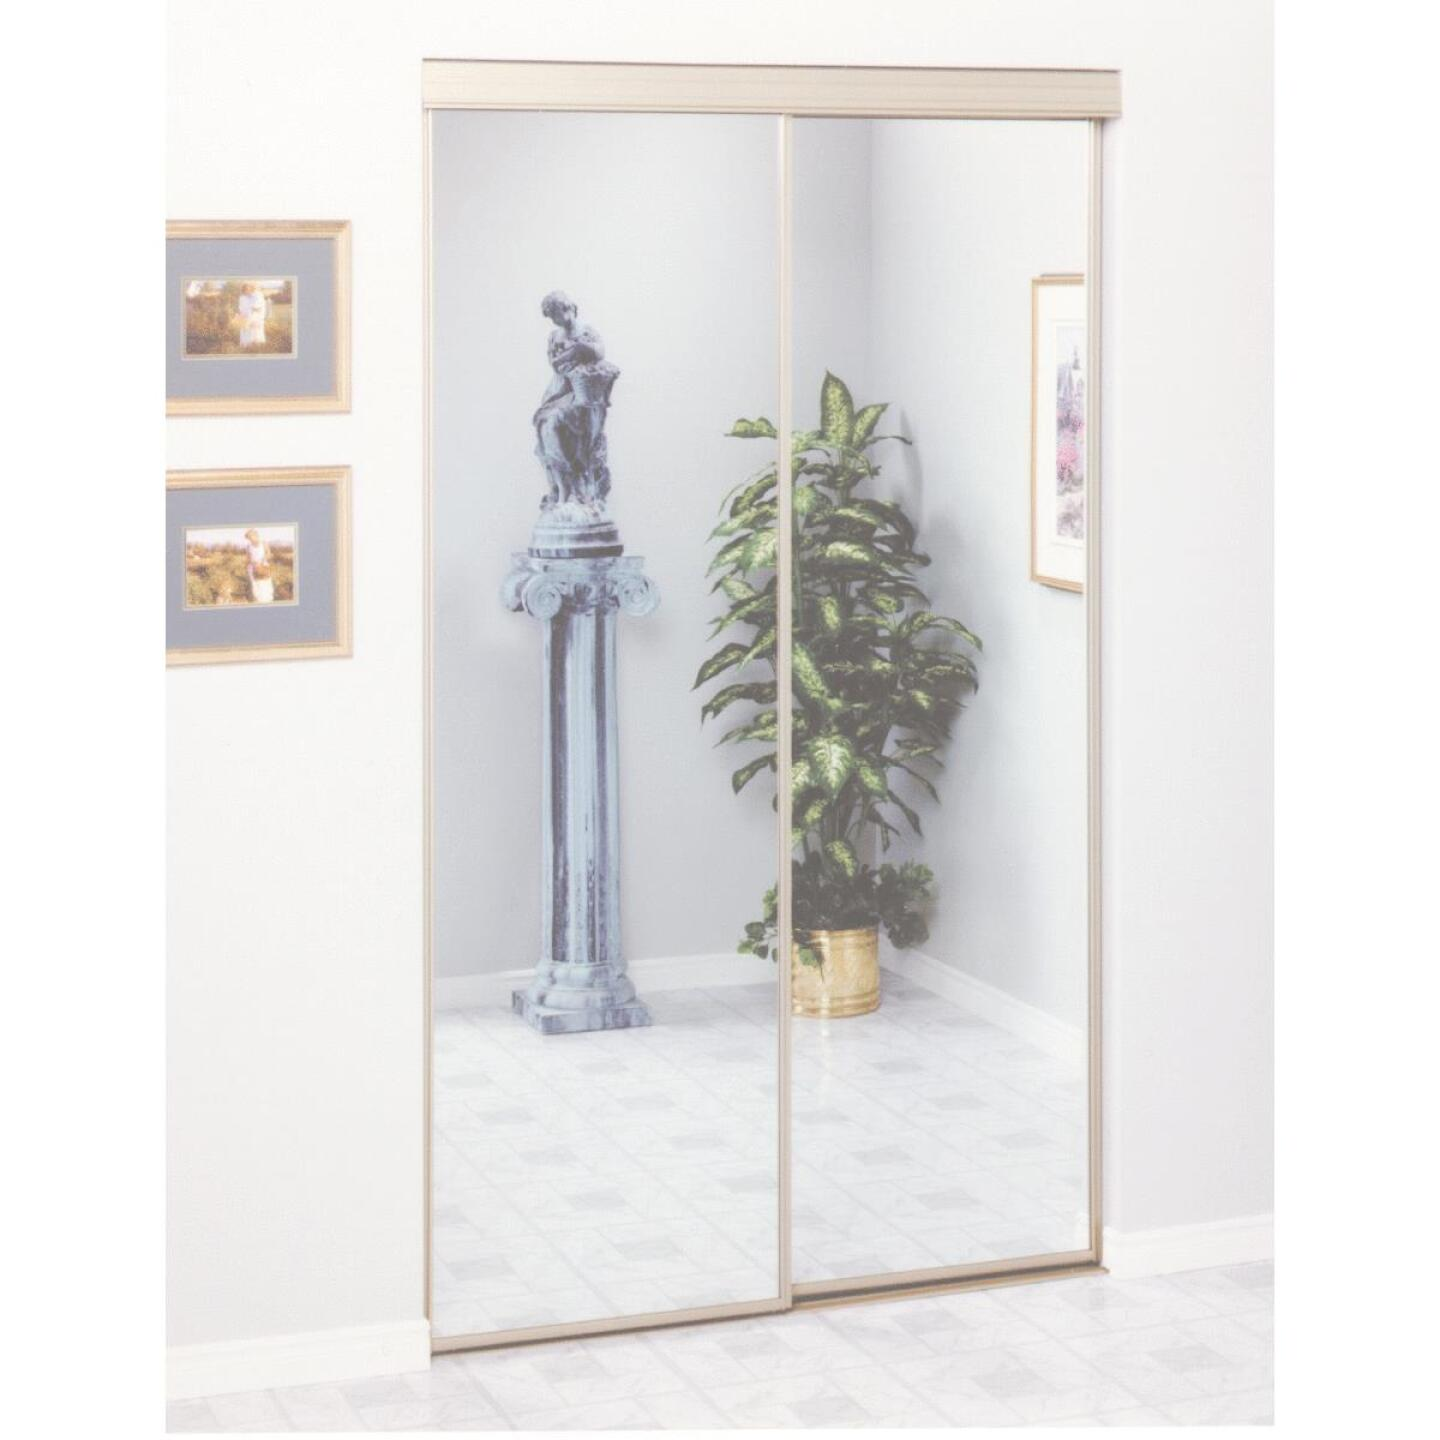 Erias 4050 Series 47 In. W. x 80-1/2 In. H. Mayan Gold Top Hung Mirrored Bypass Door Image 2